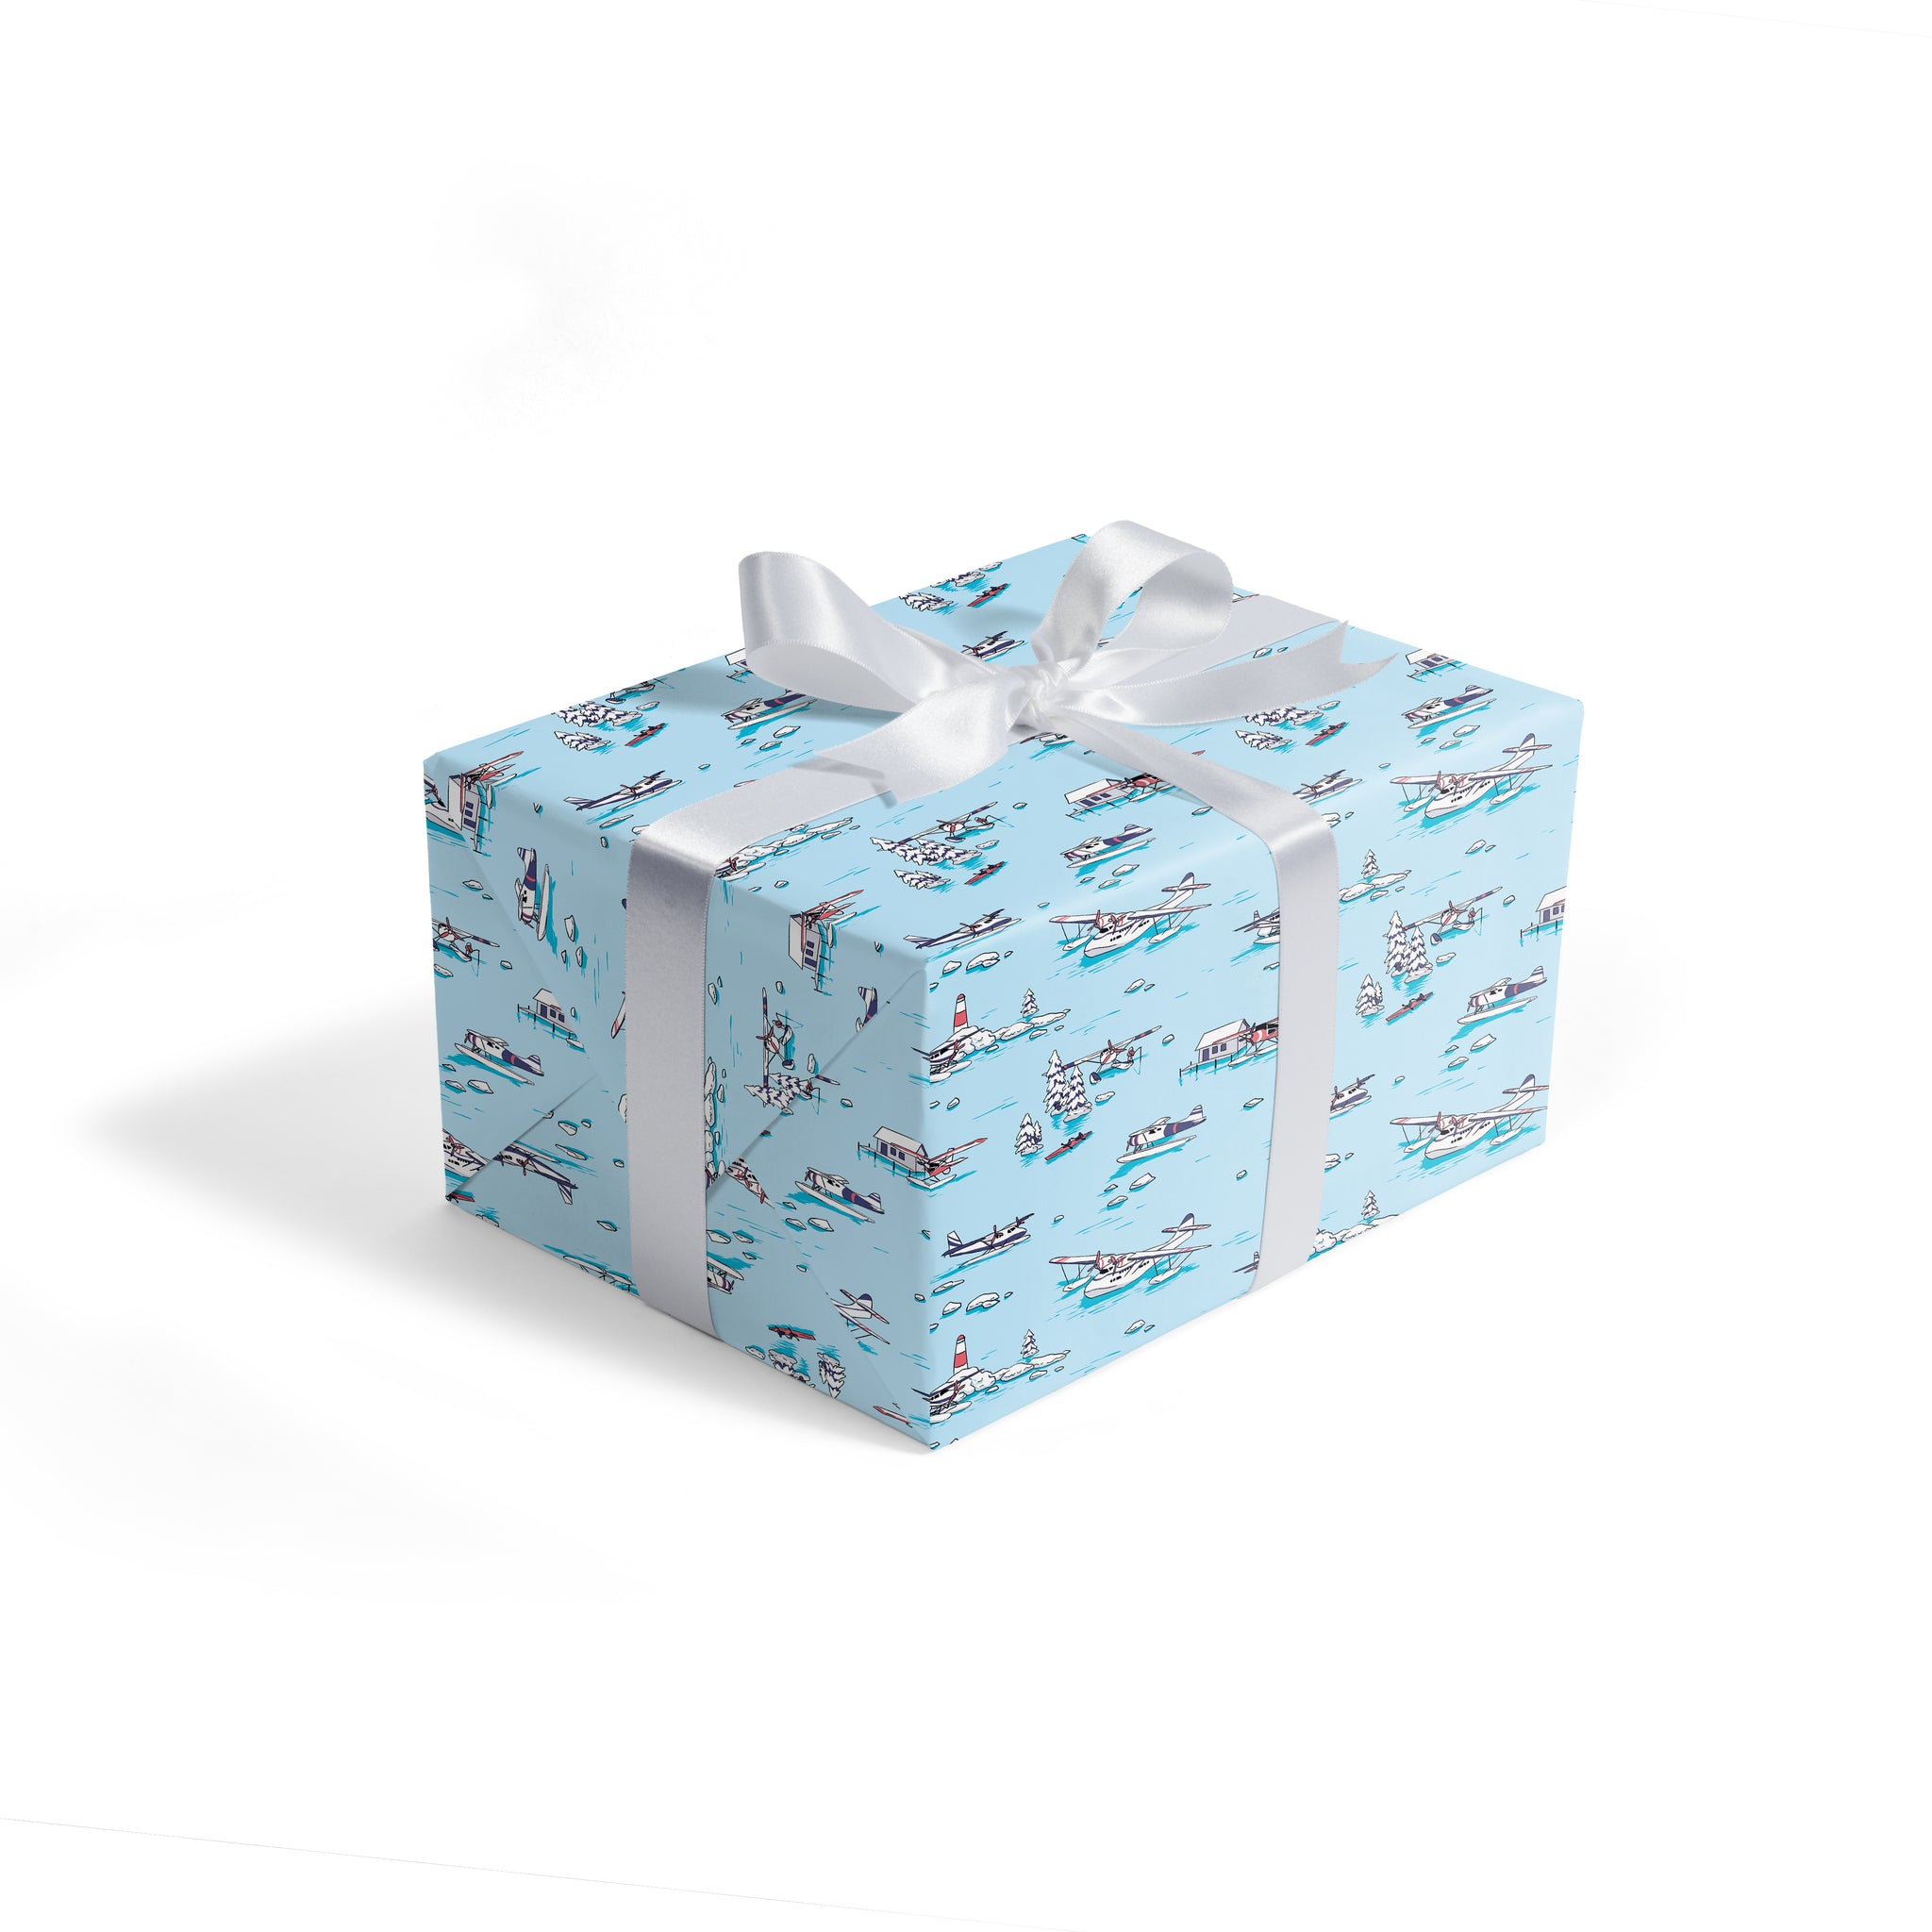 Winter water planes - wrapping paper